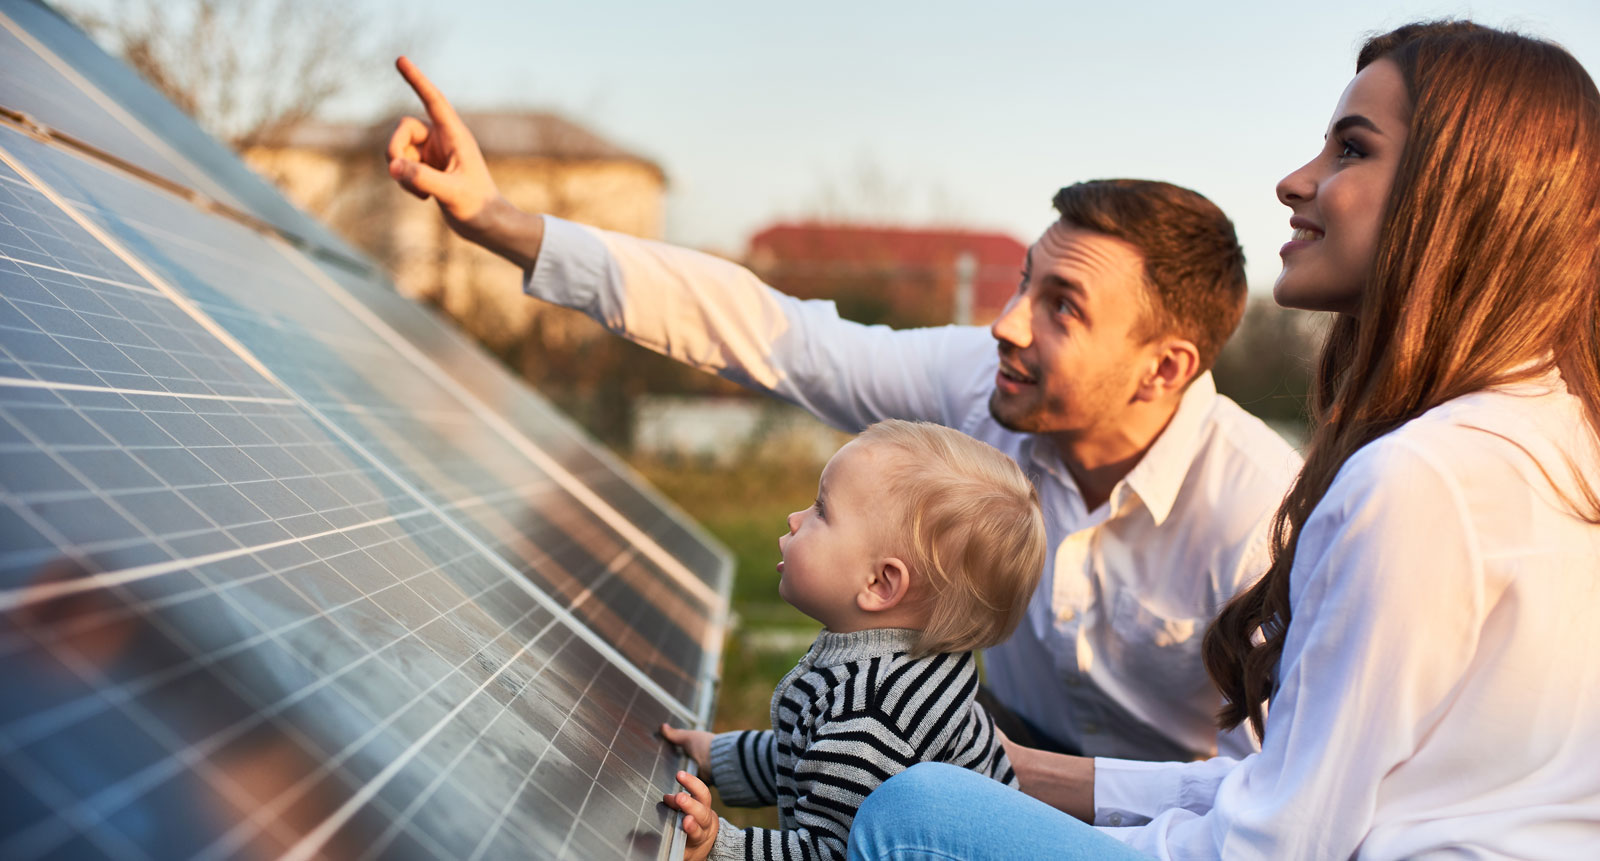 Parents and toddler inspecting solar panel